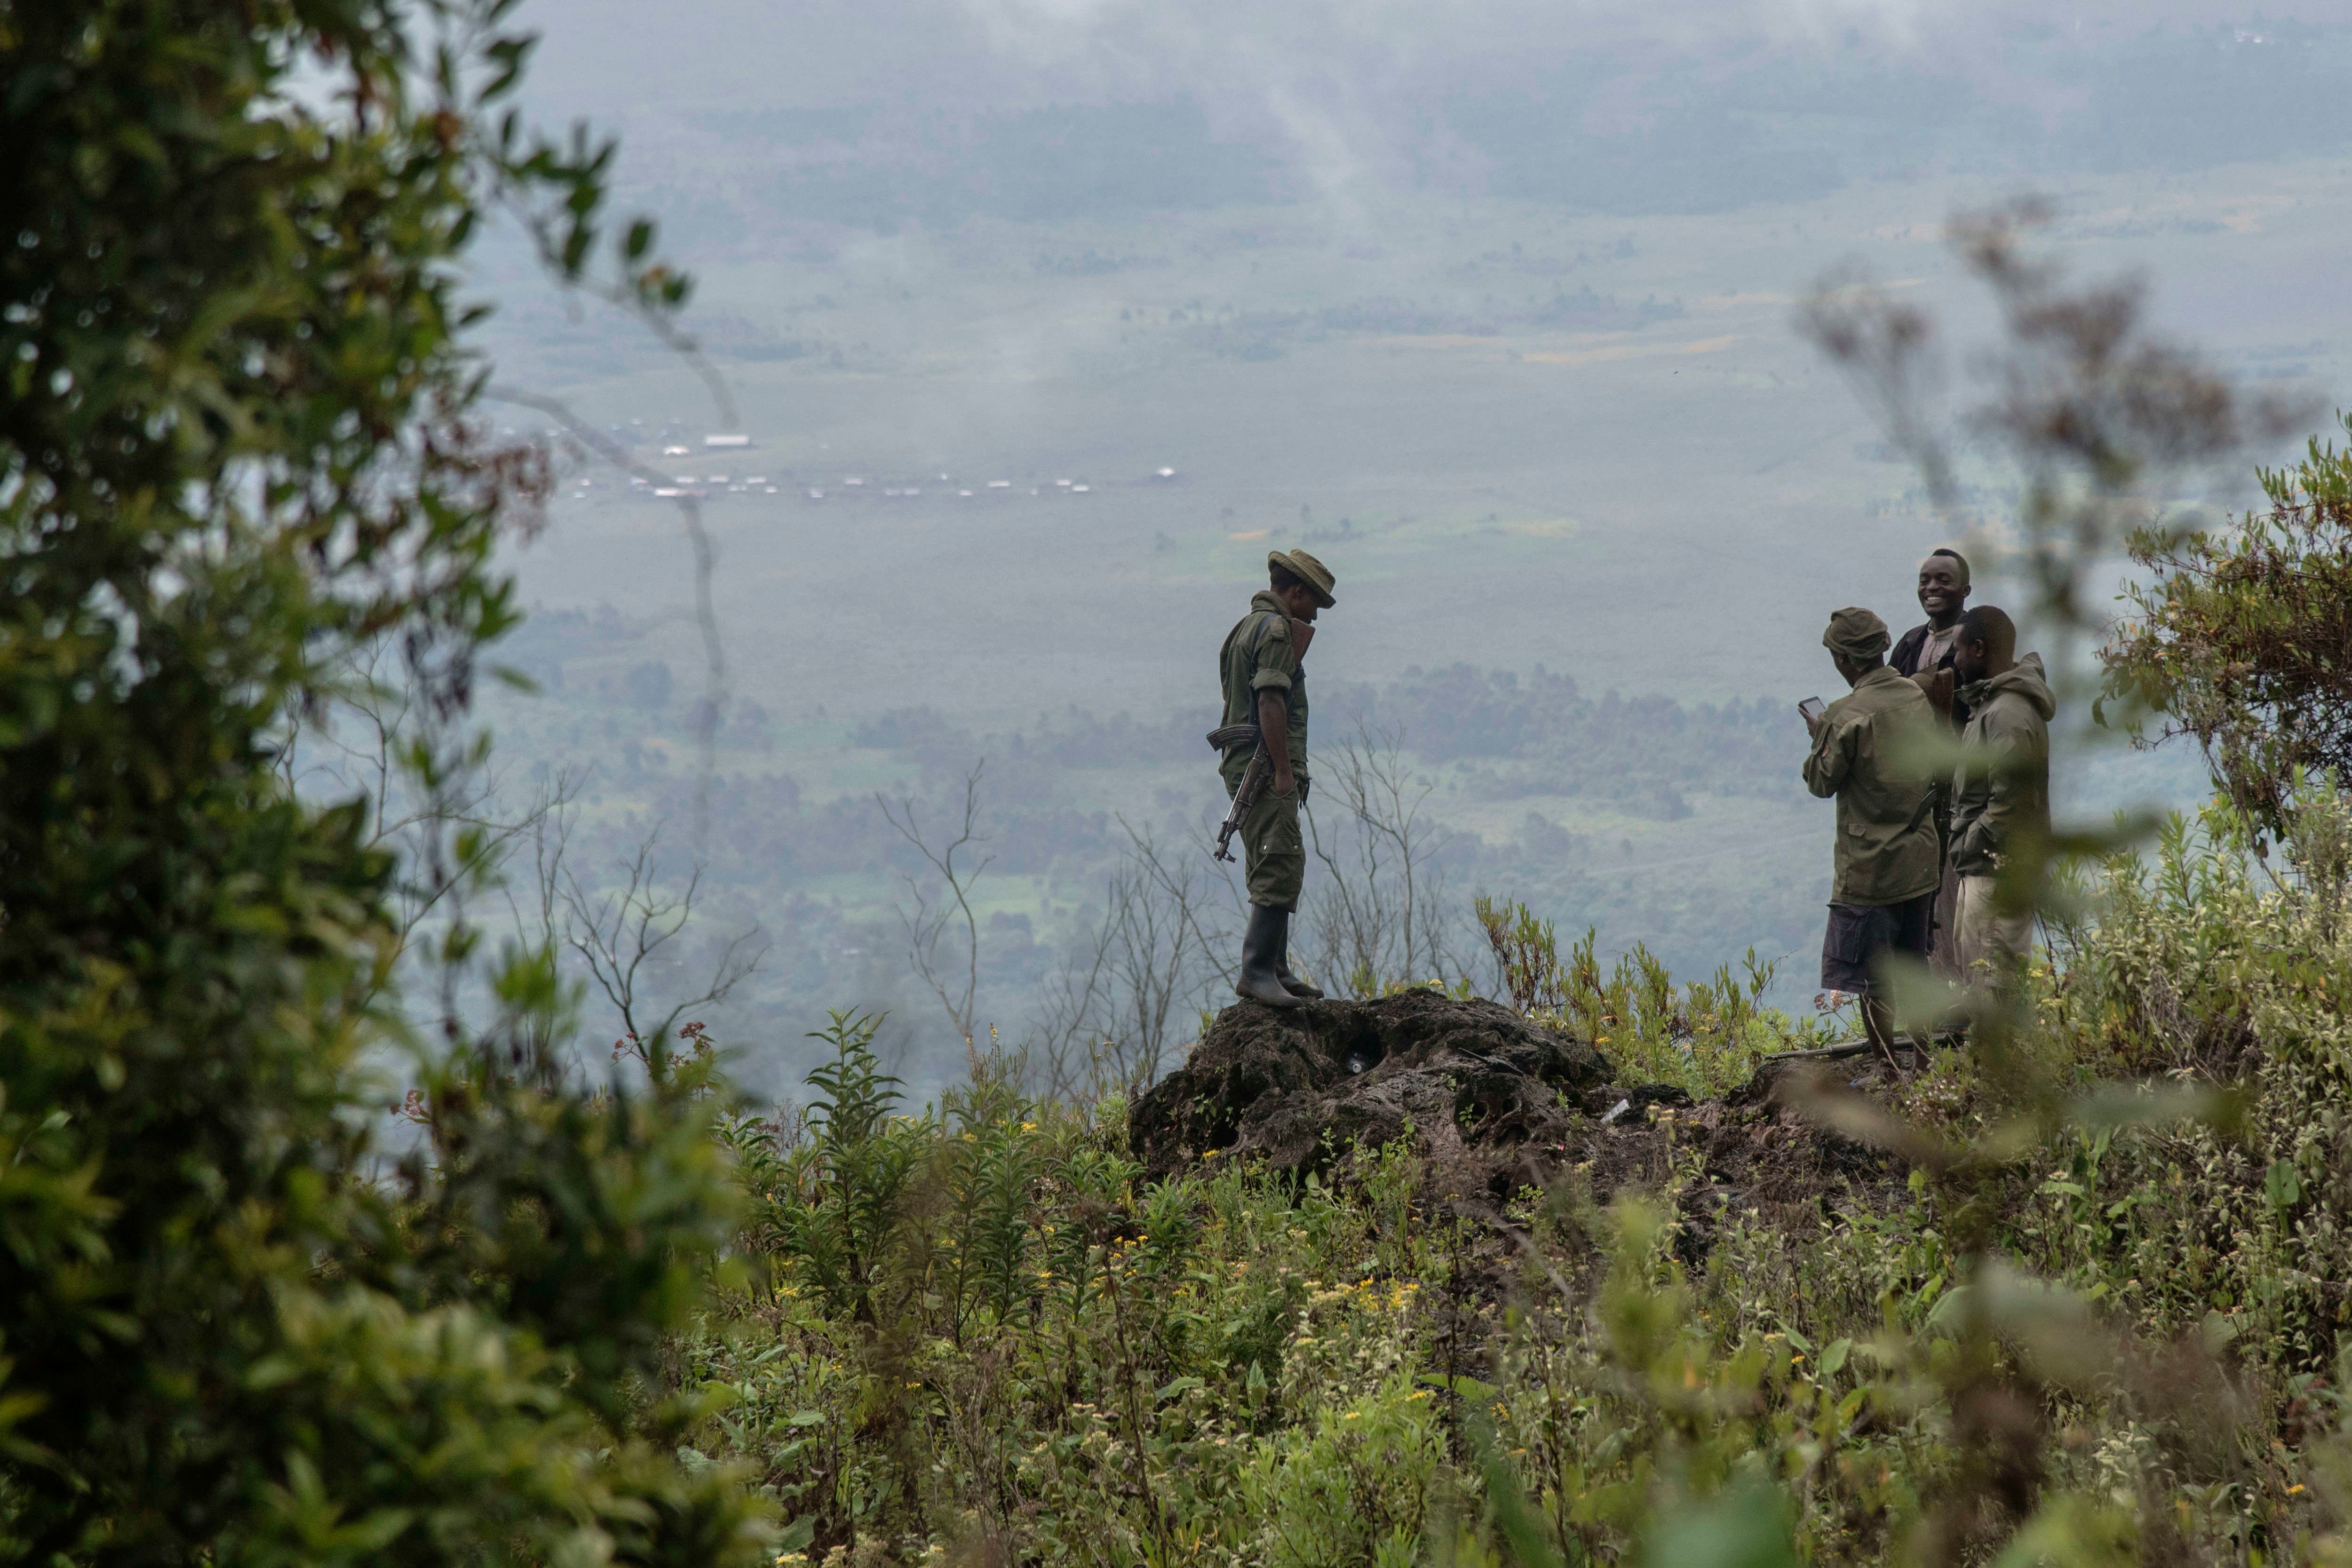 USA journalist, Congo rangers disappear after militia attack